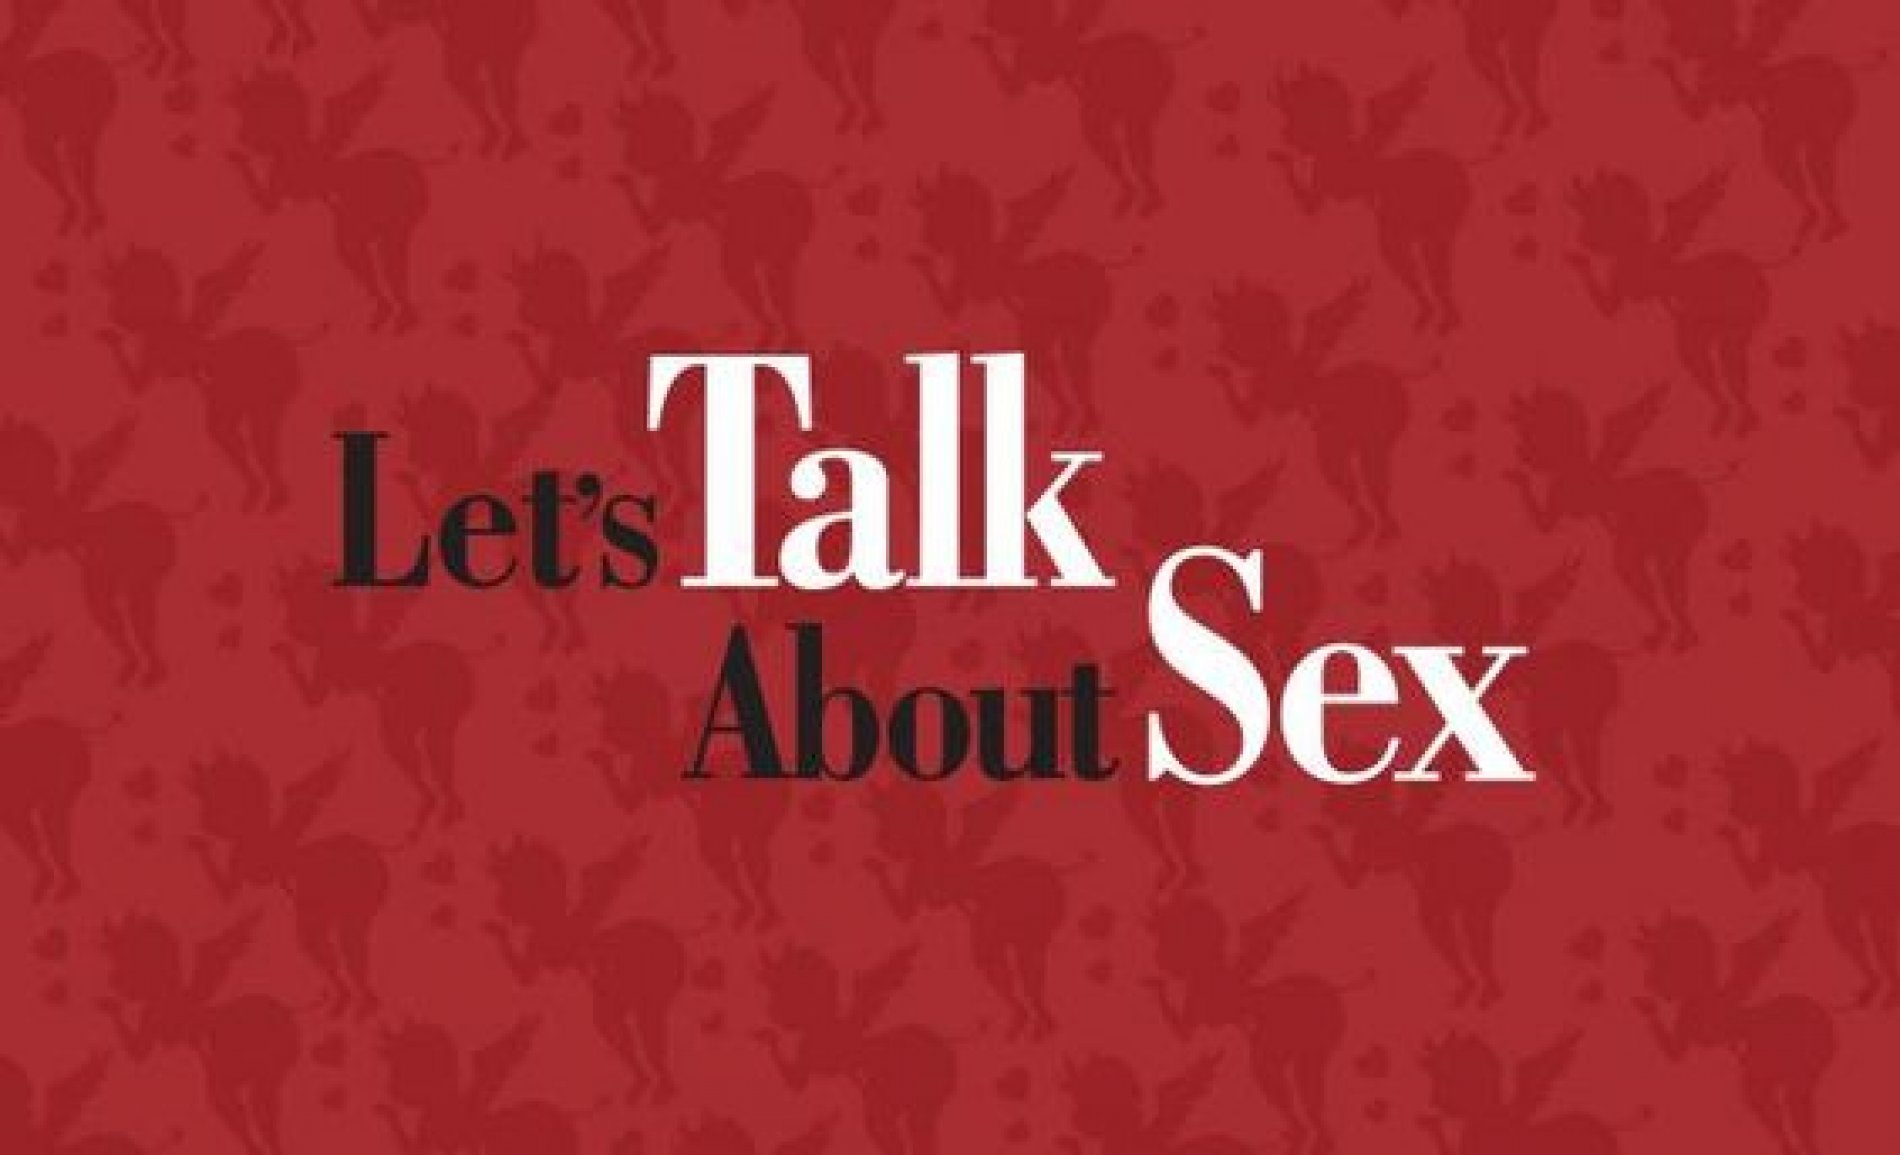 let's talk about SEX!!!